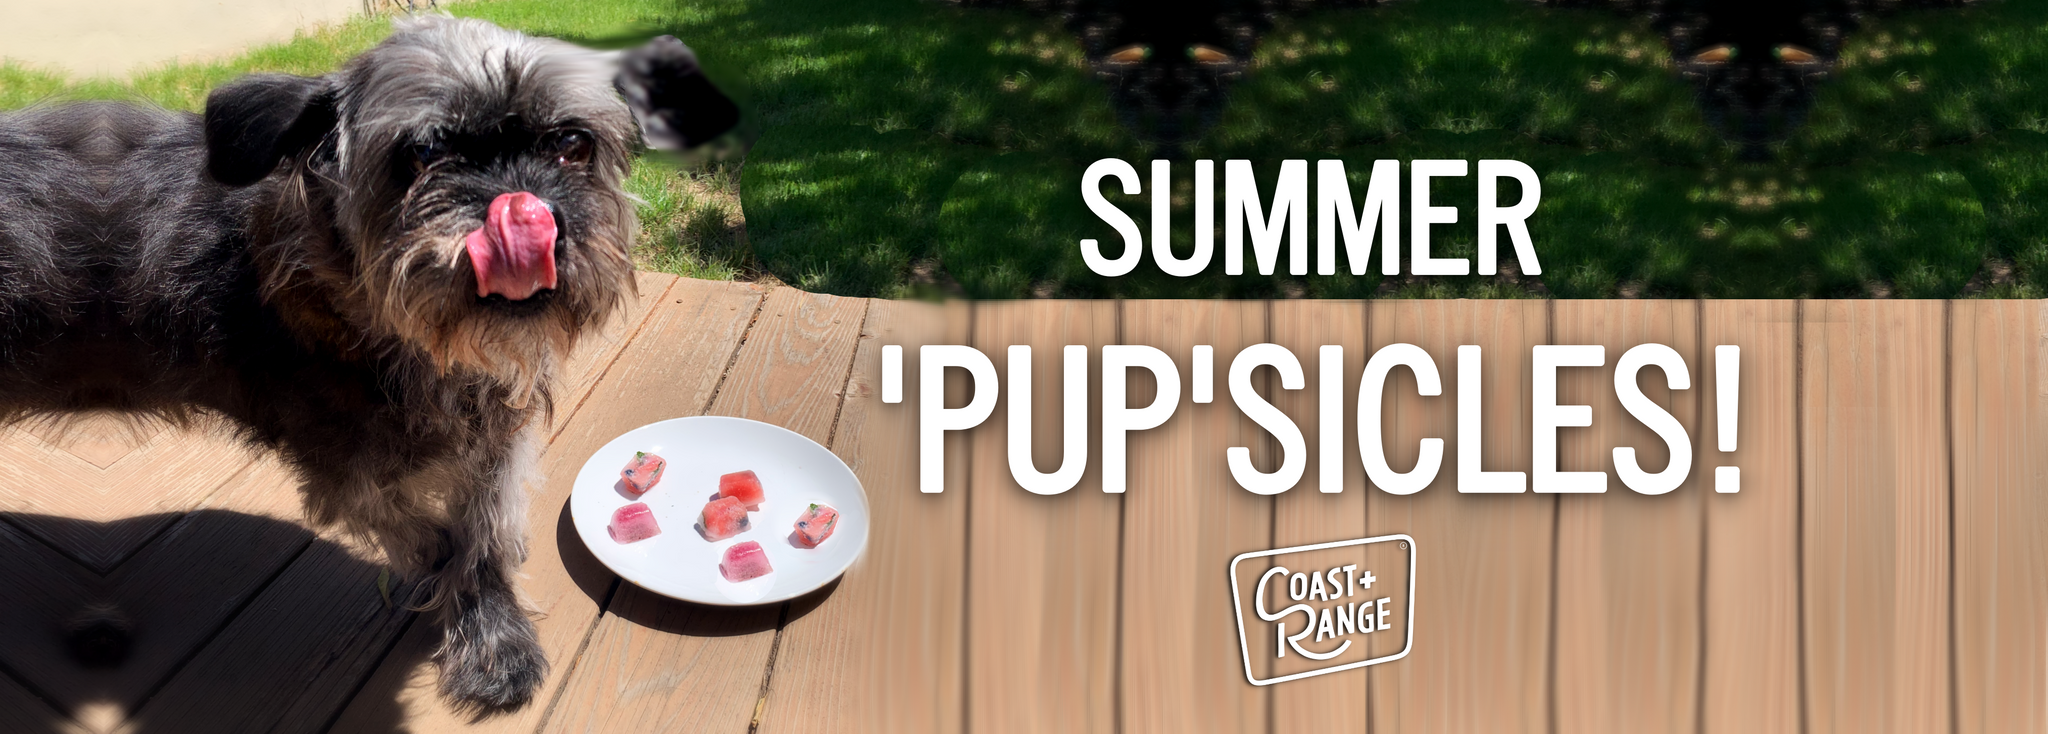 EASY SUMMERTIME 'PUP'SICLES!